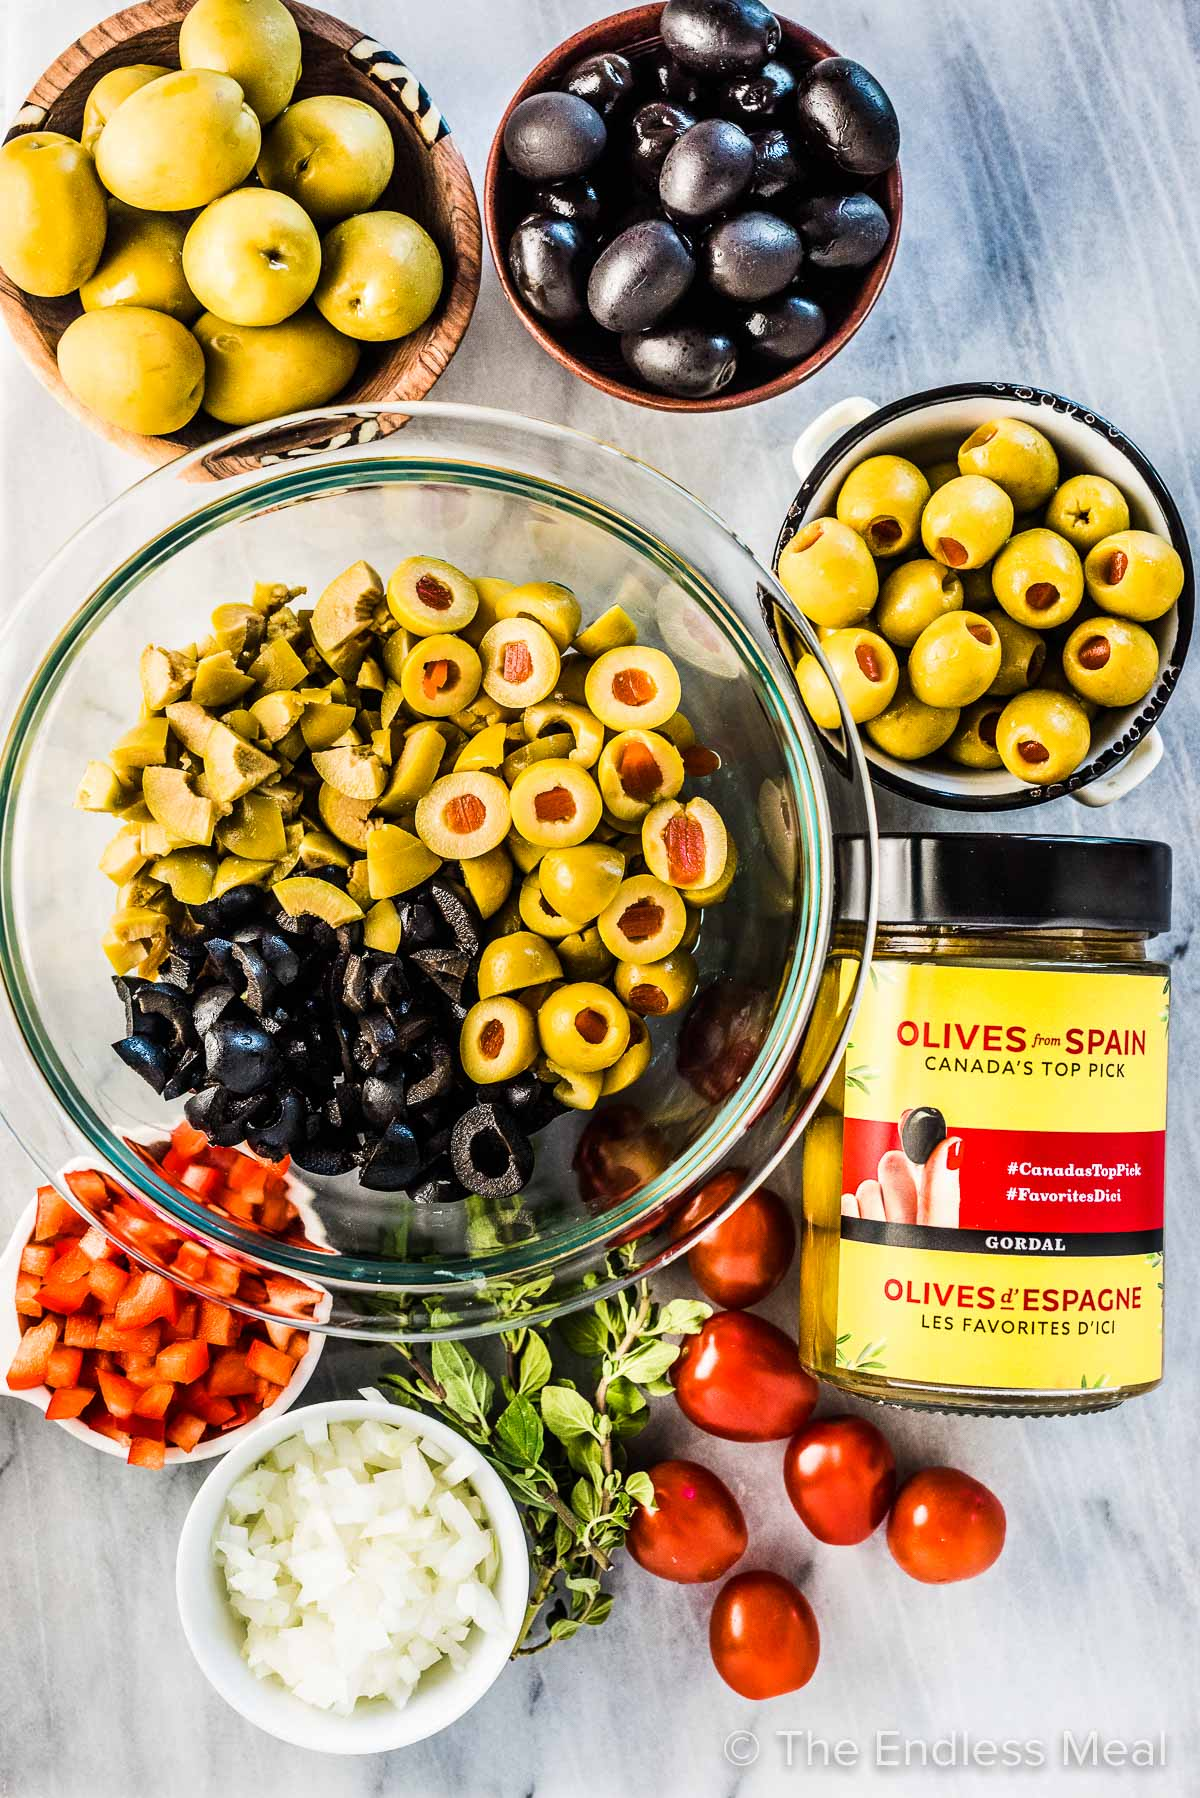 All the ingredients for this olive salsa recipe laid out on a marble counter.